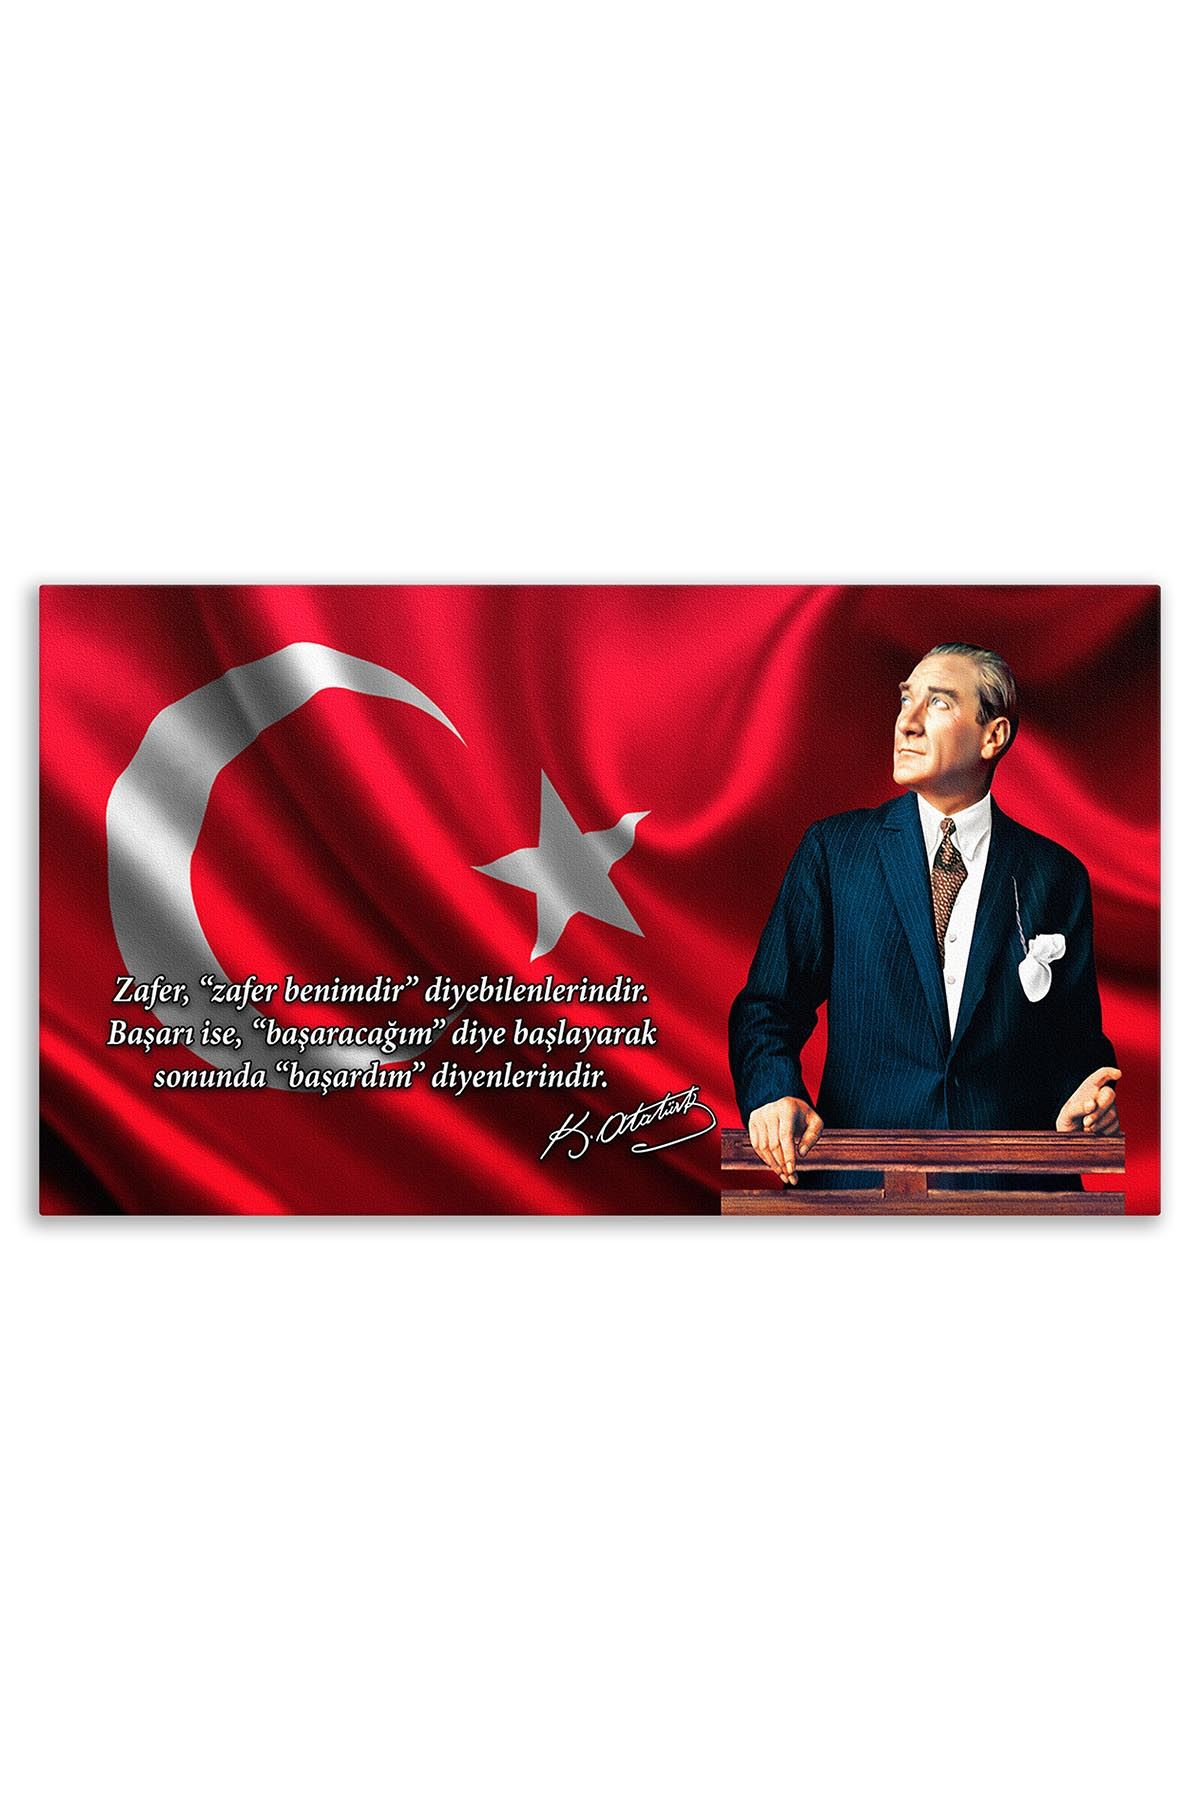 Atatürk In Council Canvas Board | Printed Canvas Board | Customized Canvas Board